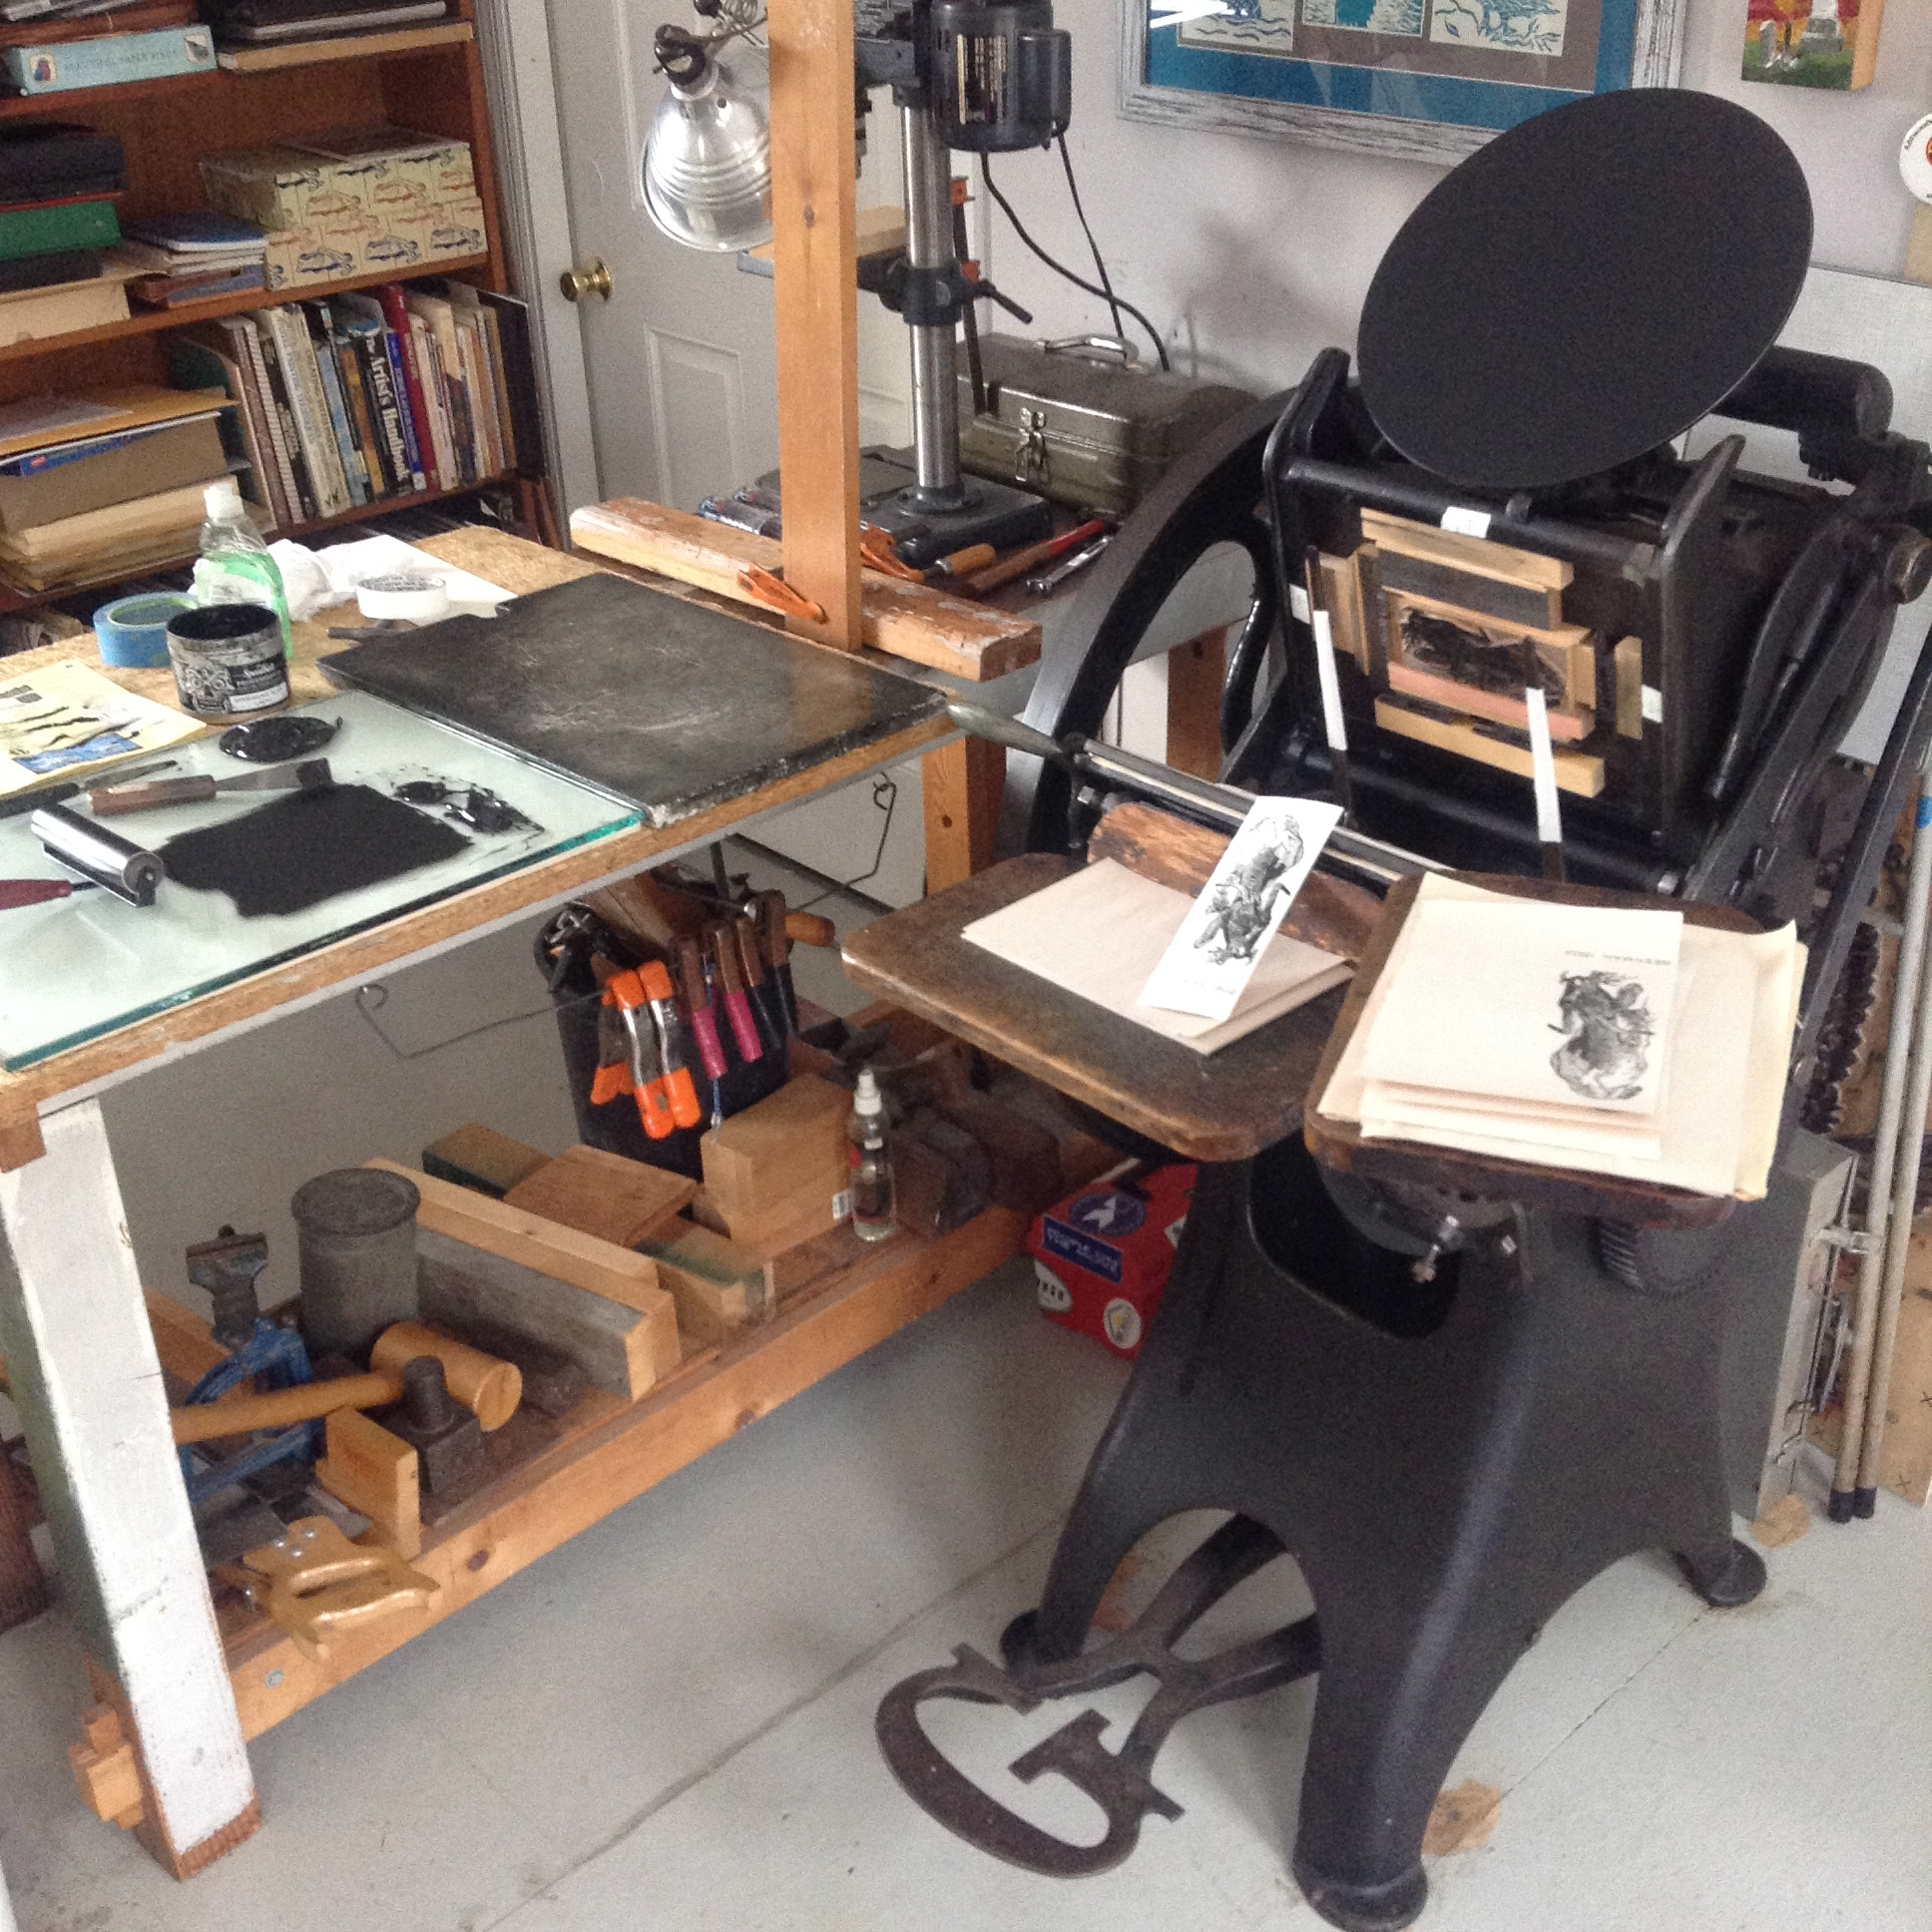 Chase is placed into the press and printing can begin. Ink slab and ink is seen on workbench to the left